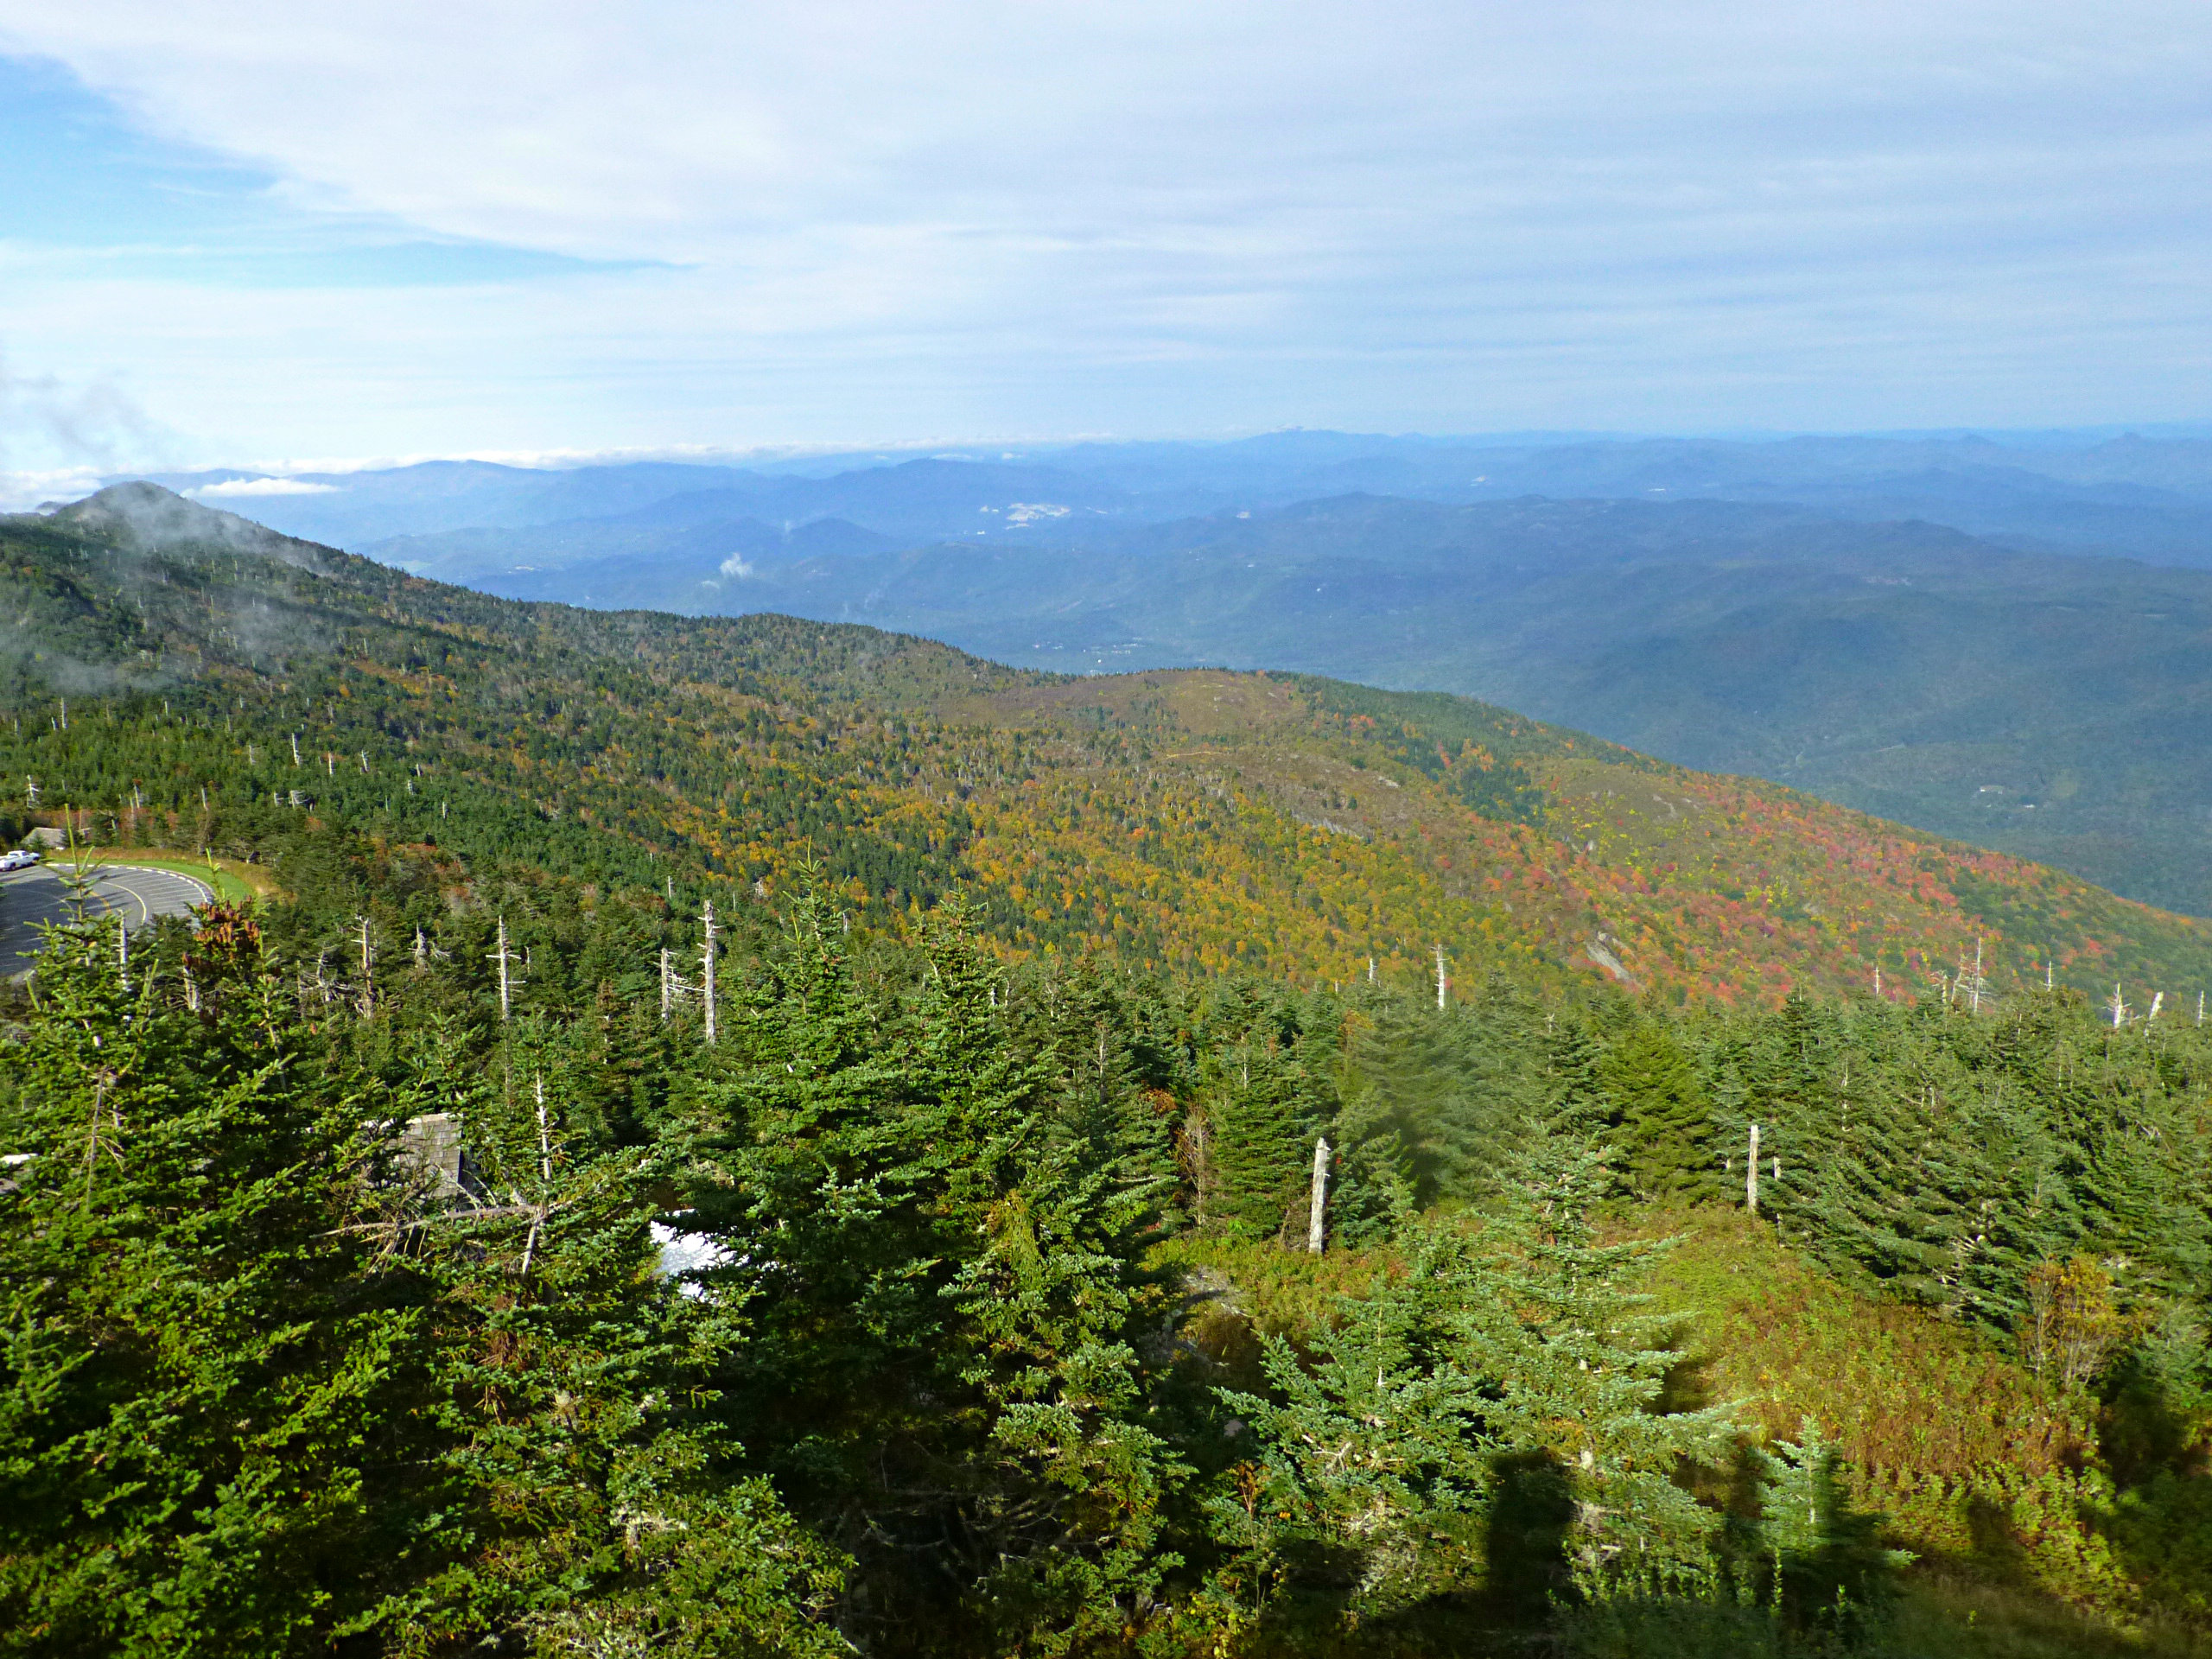 Expansive mountain view showing fall color